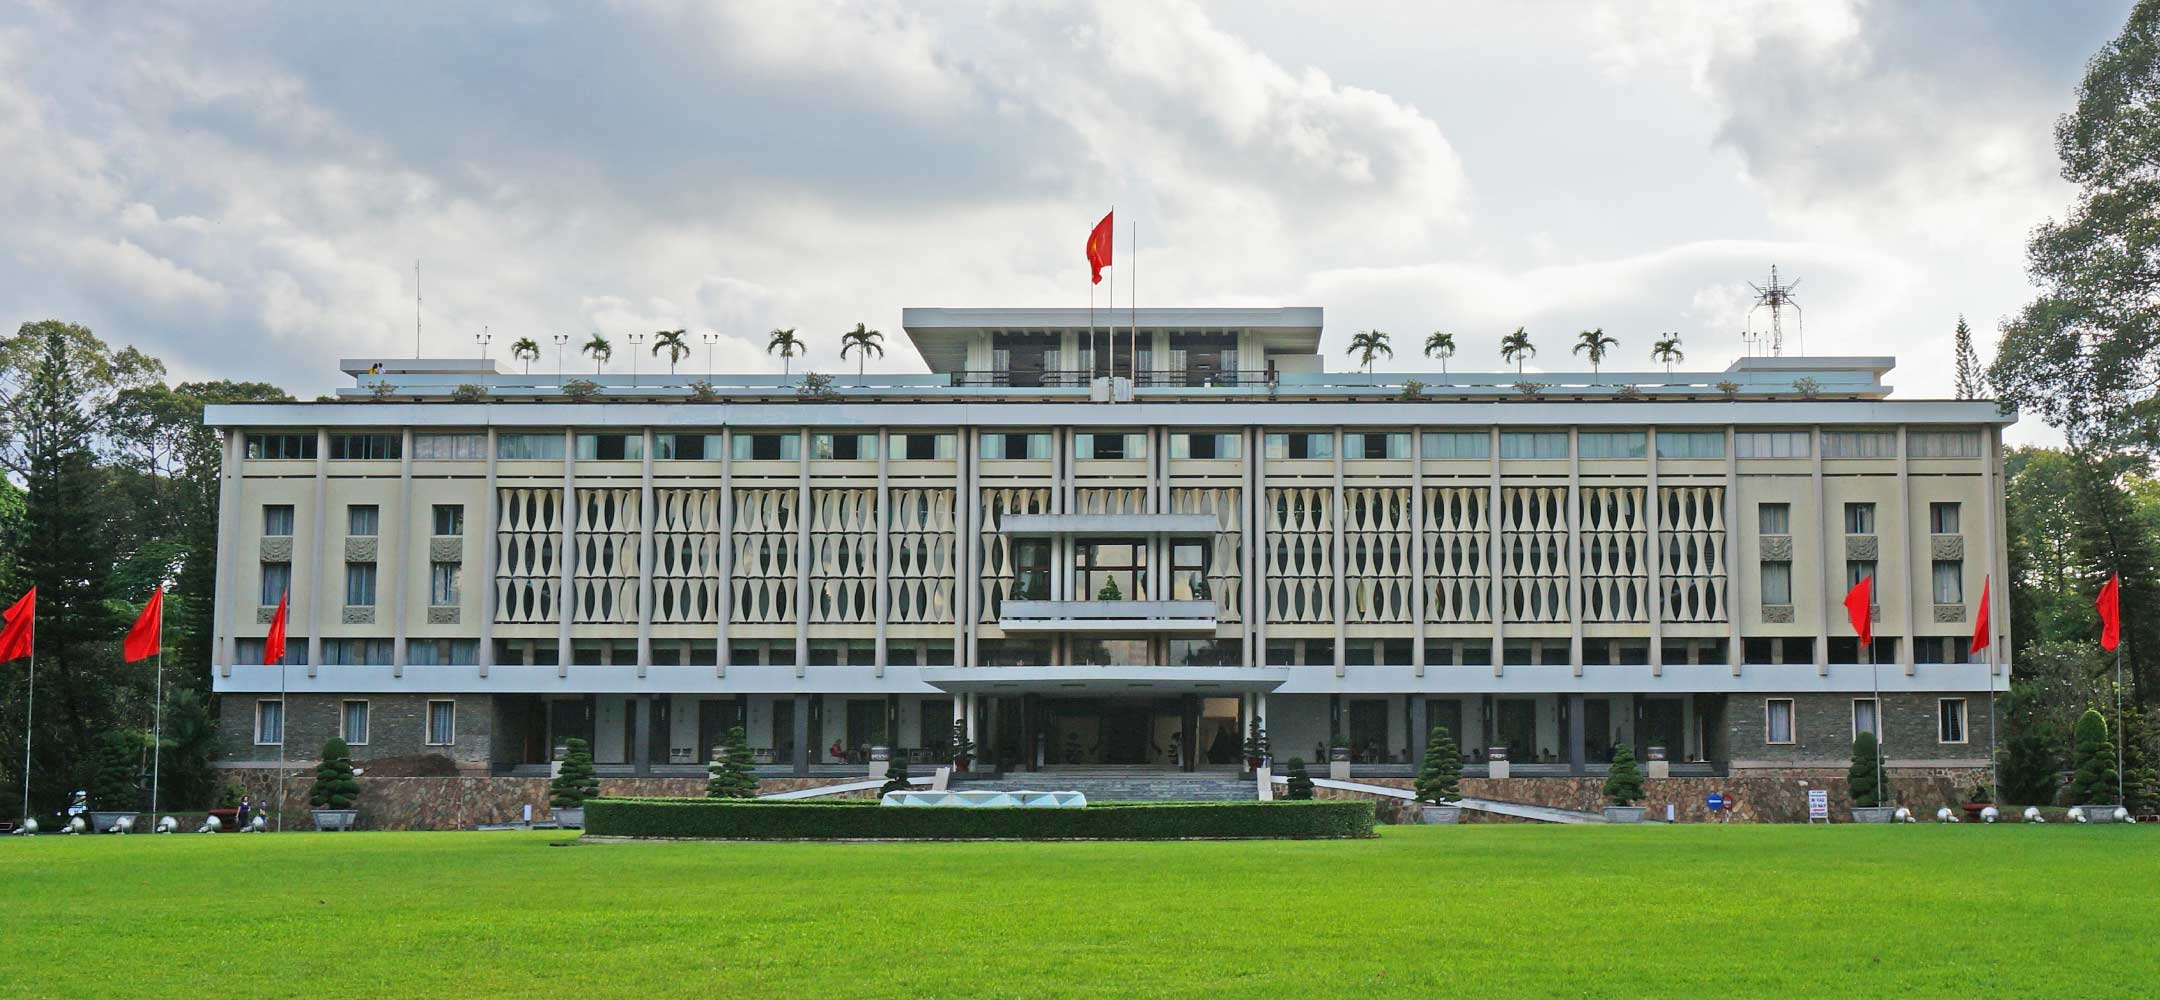 The Independence Palace in Saigon (Ho Chi Minh) City